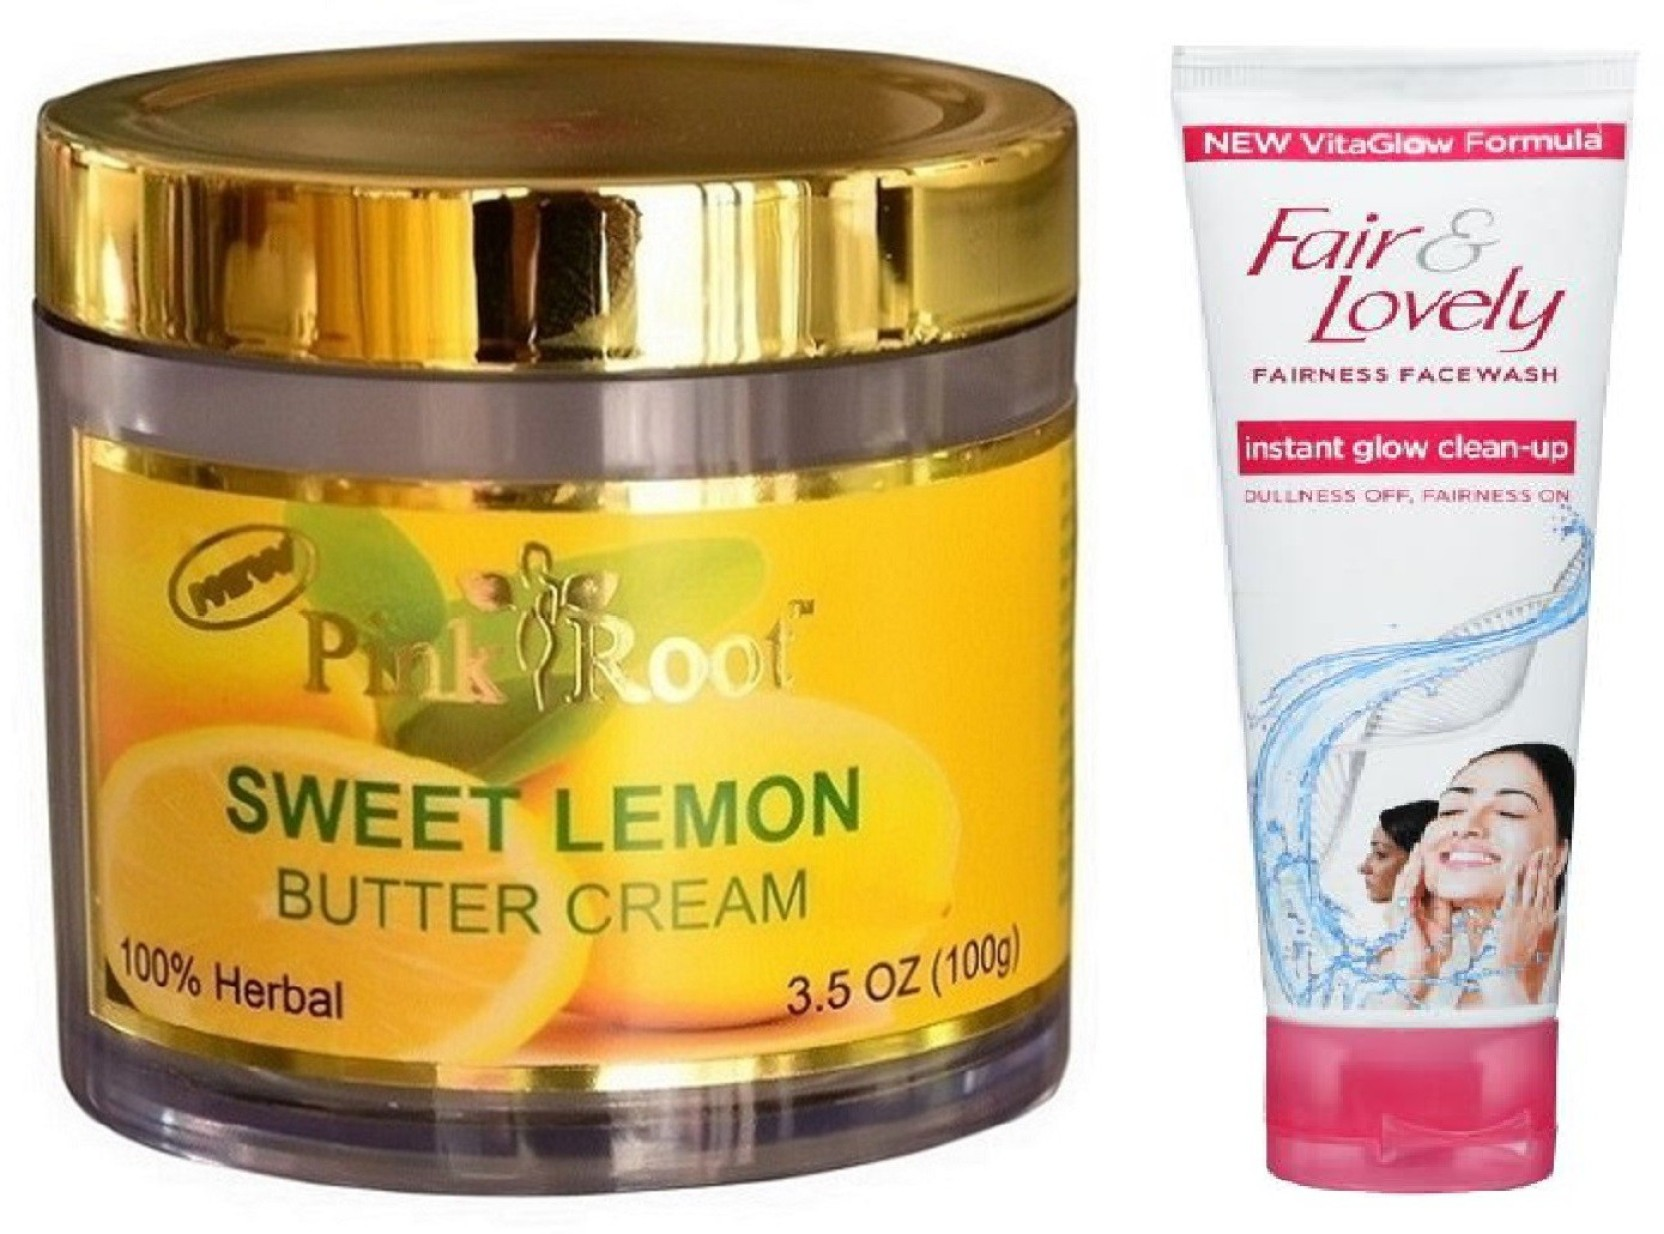 Pink Root Sweet Lemon Cream 100g With Fair Lovely Instant Glow Facial Foam .